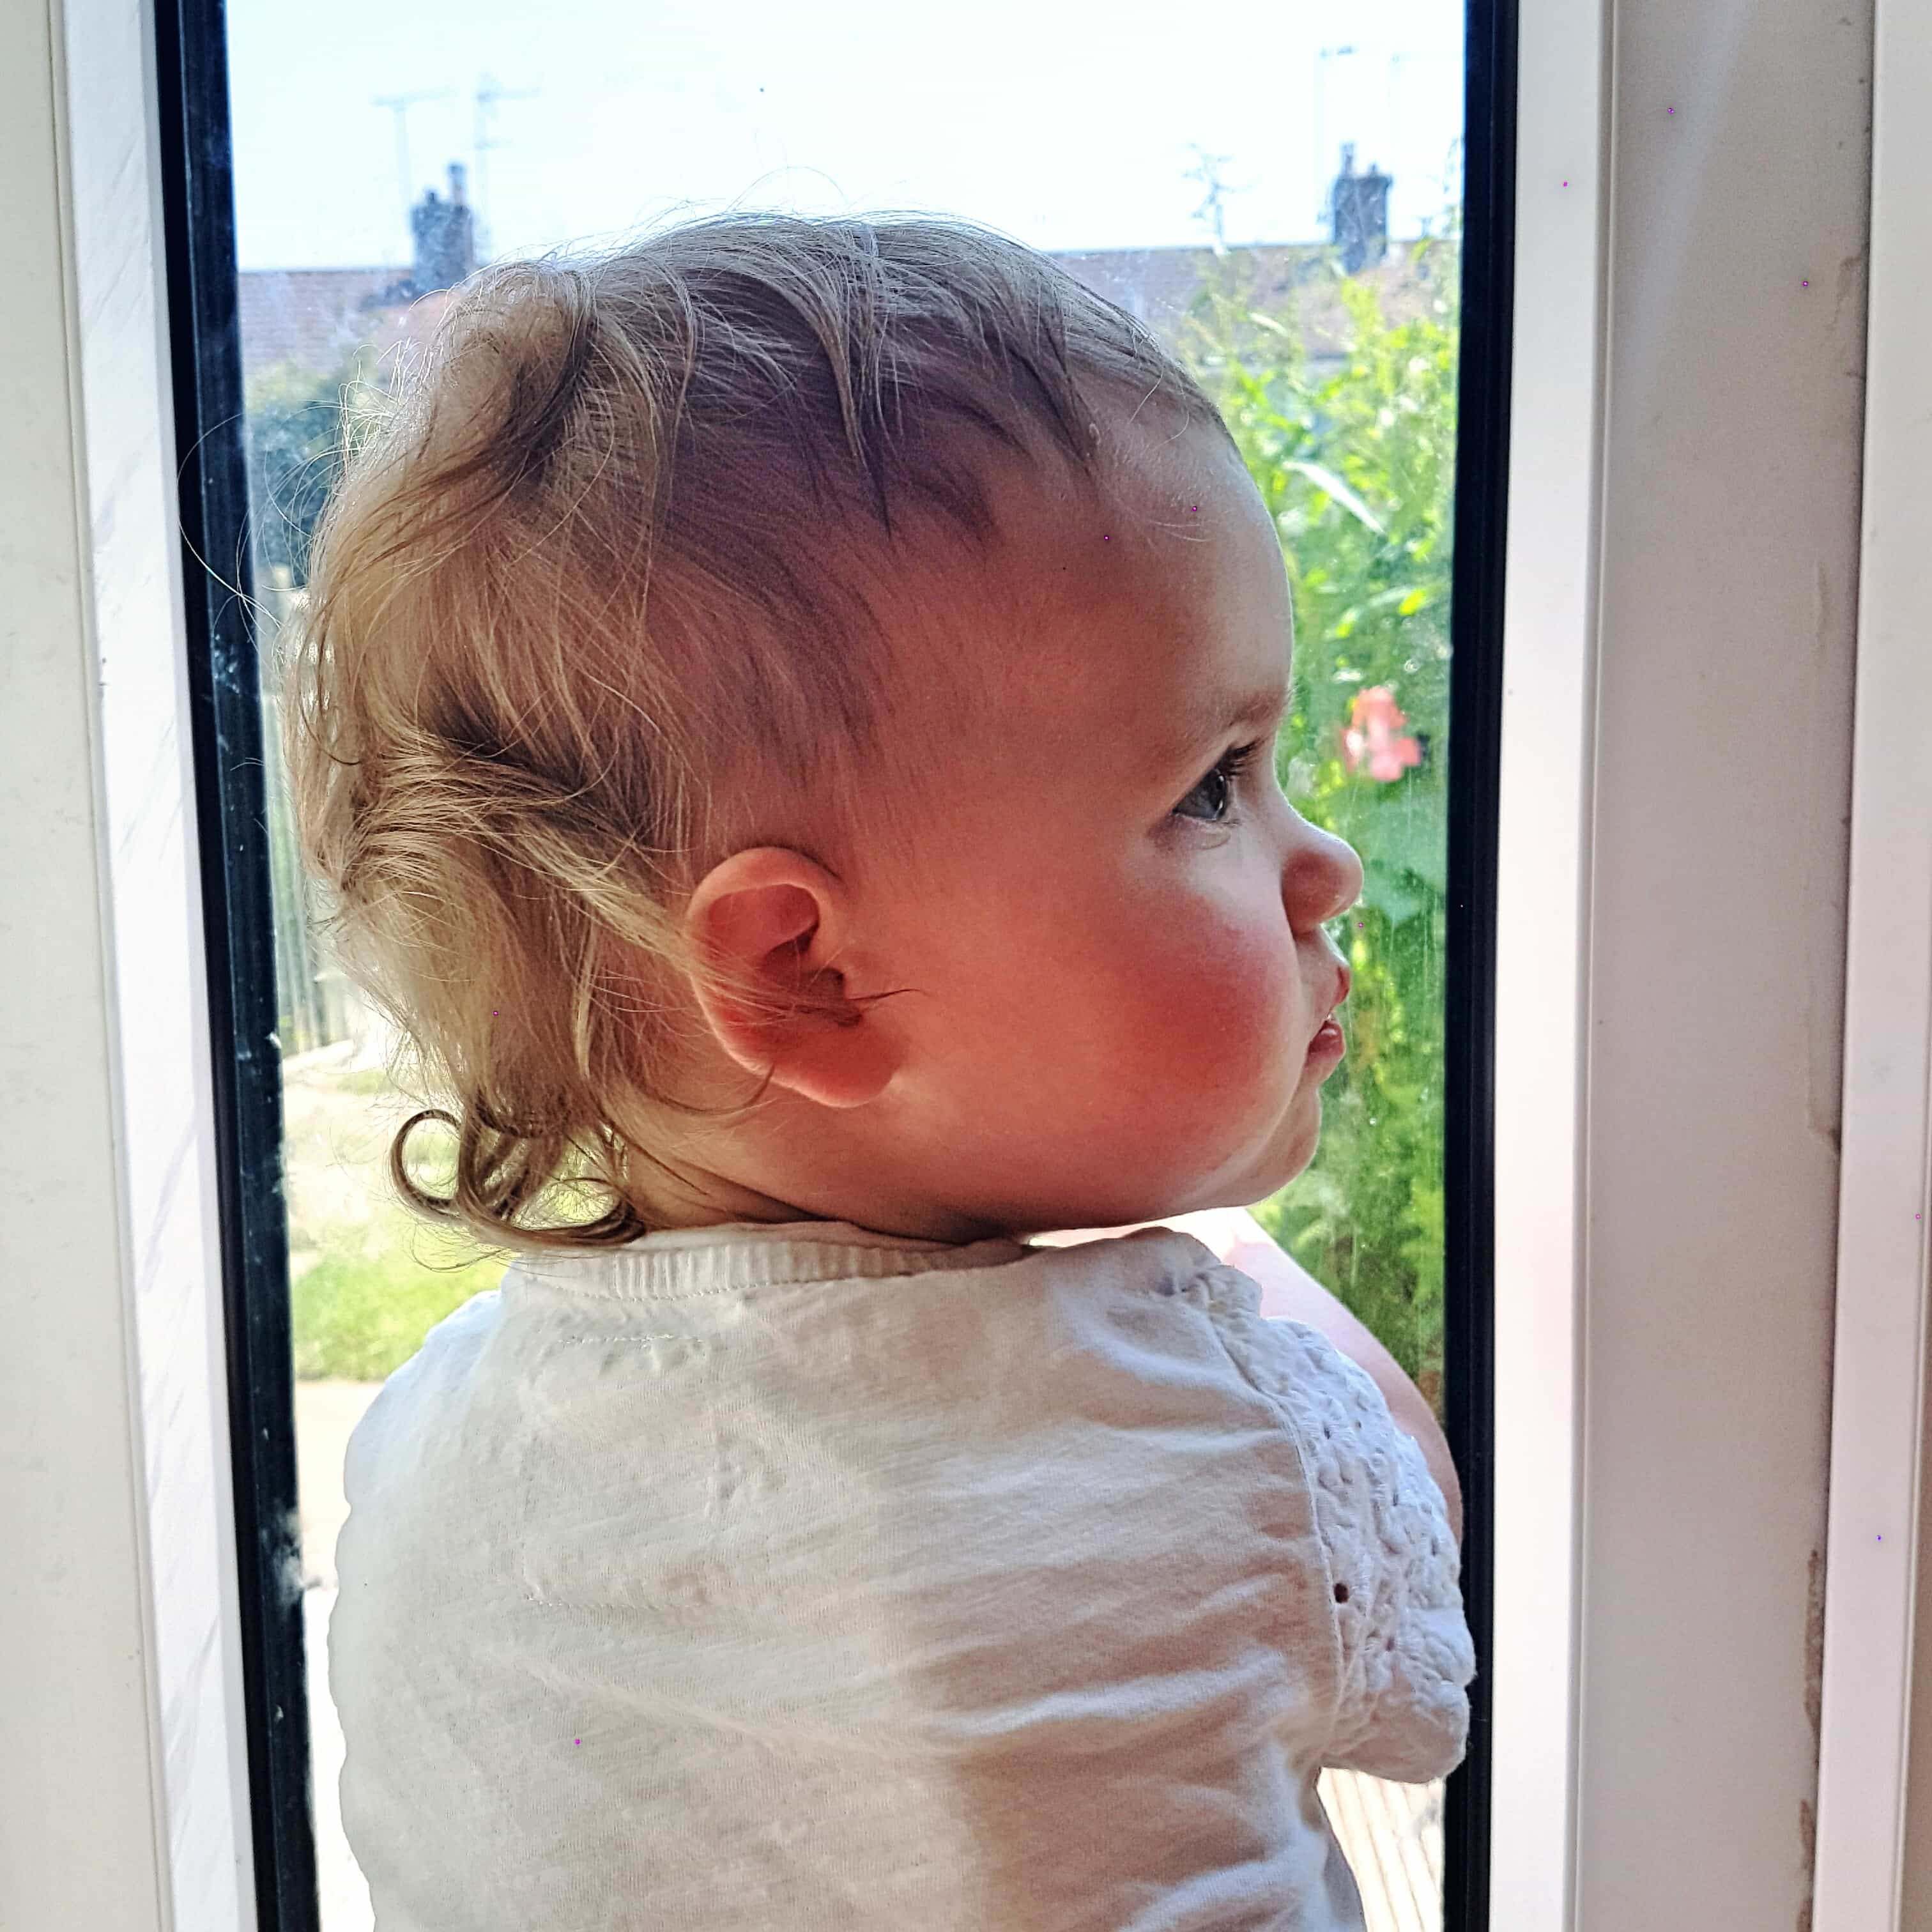 Small girl framed by window